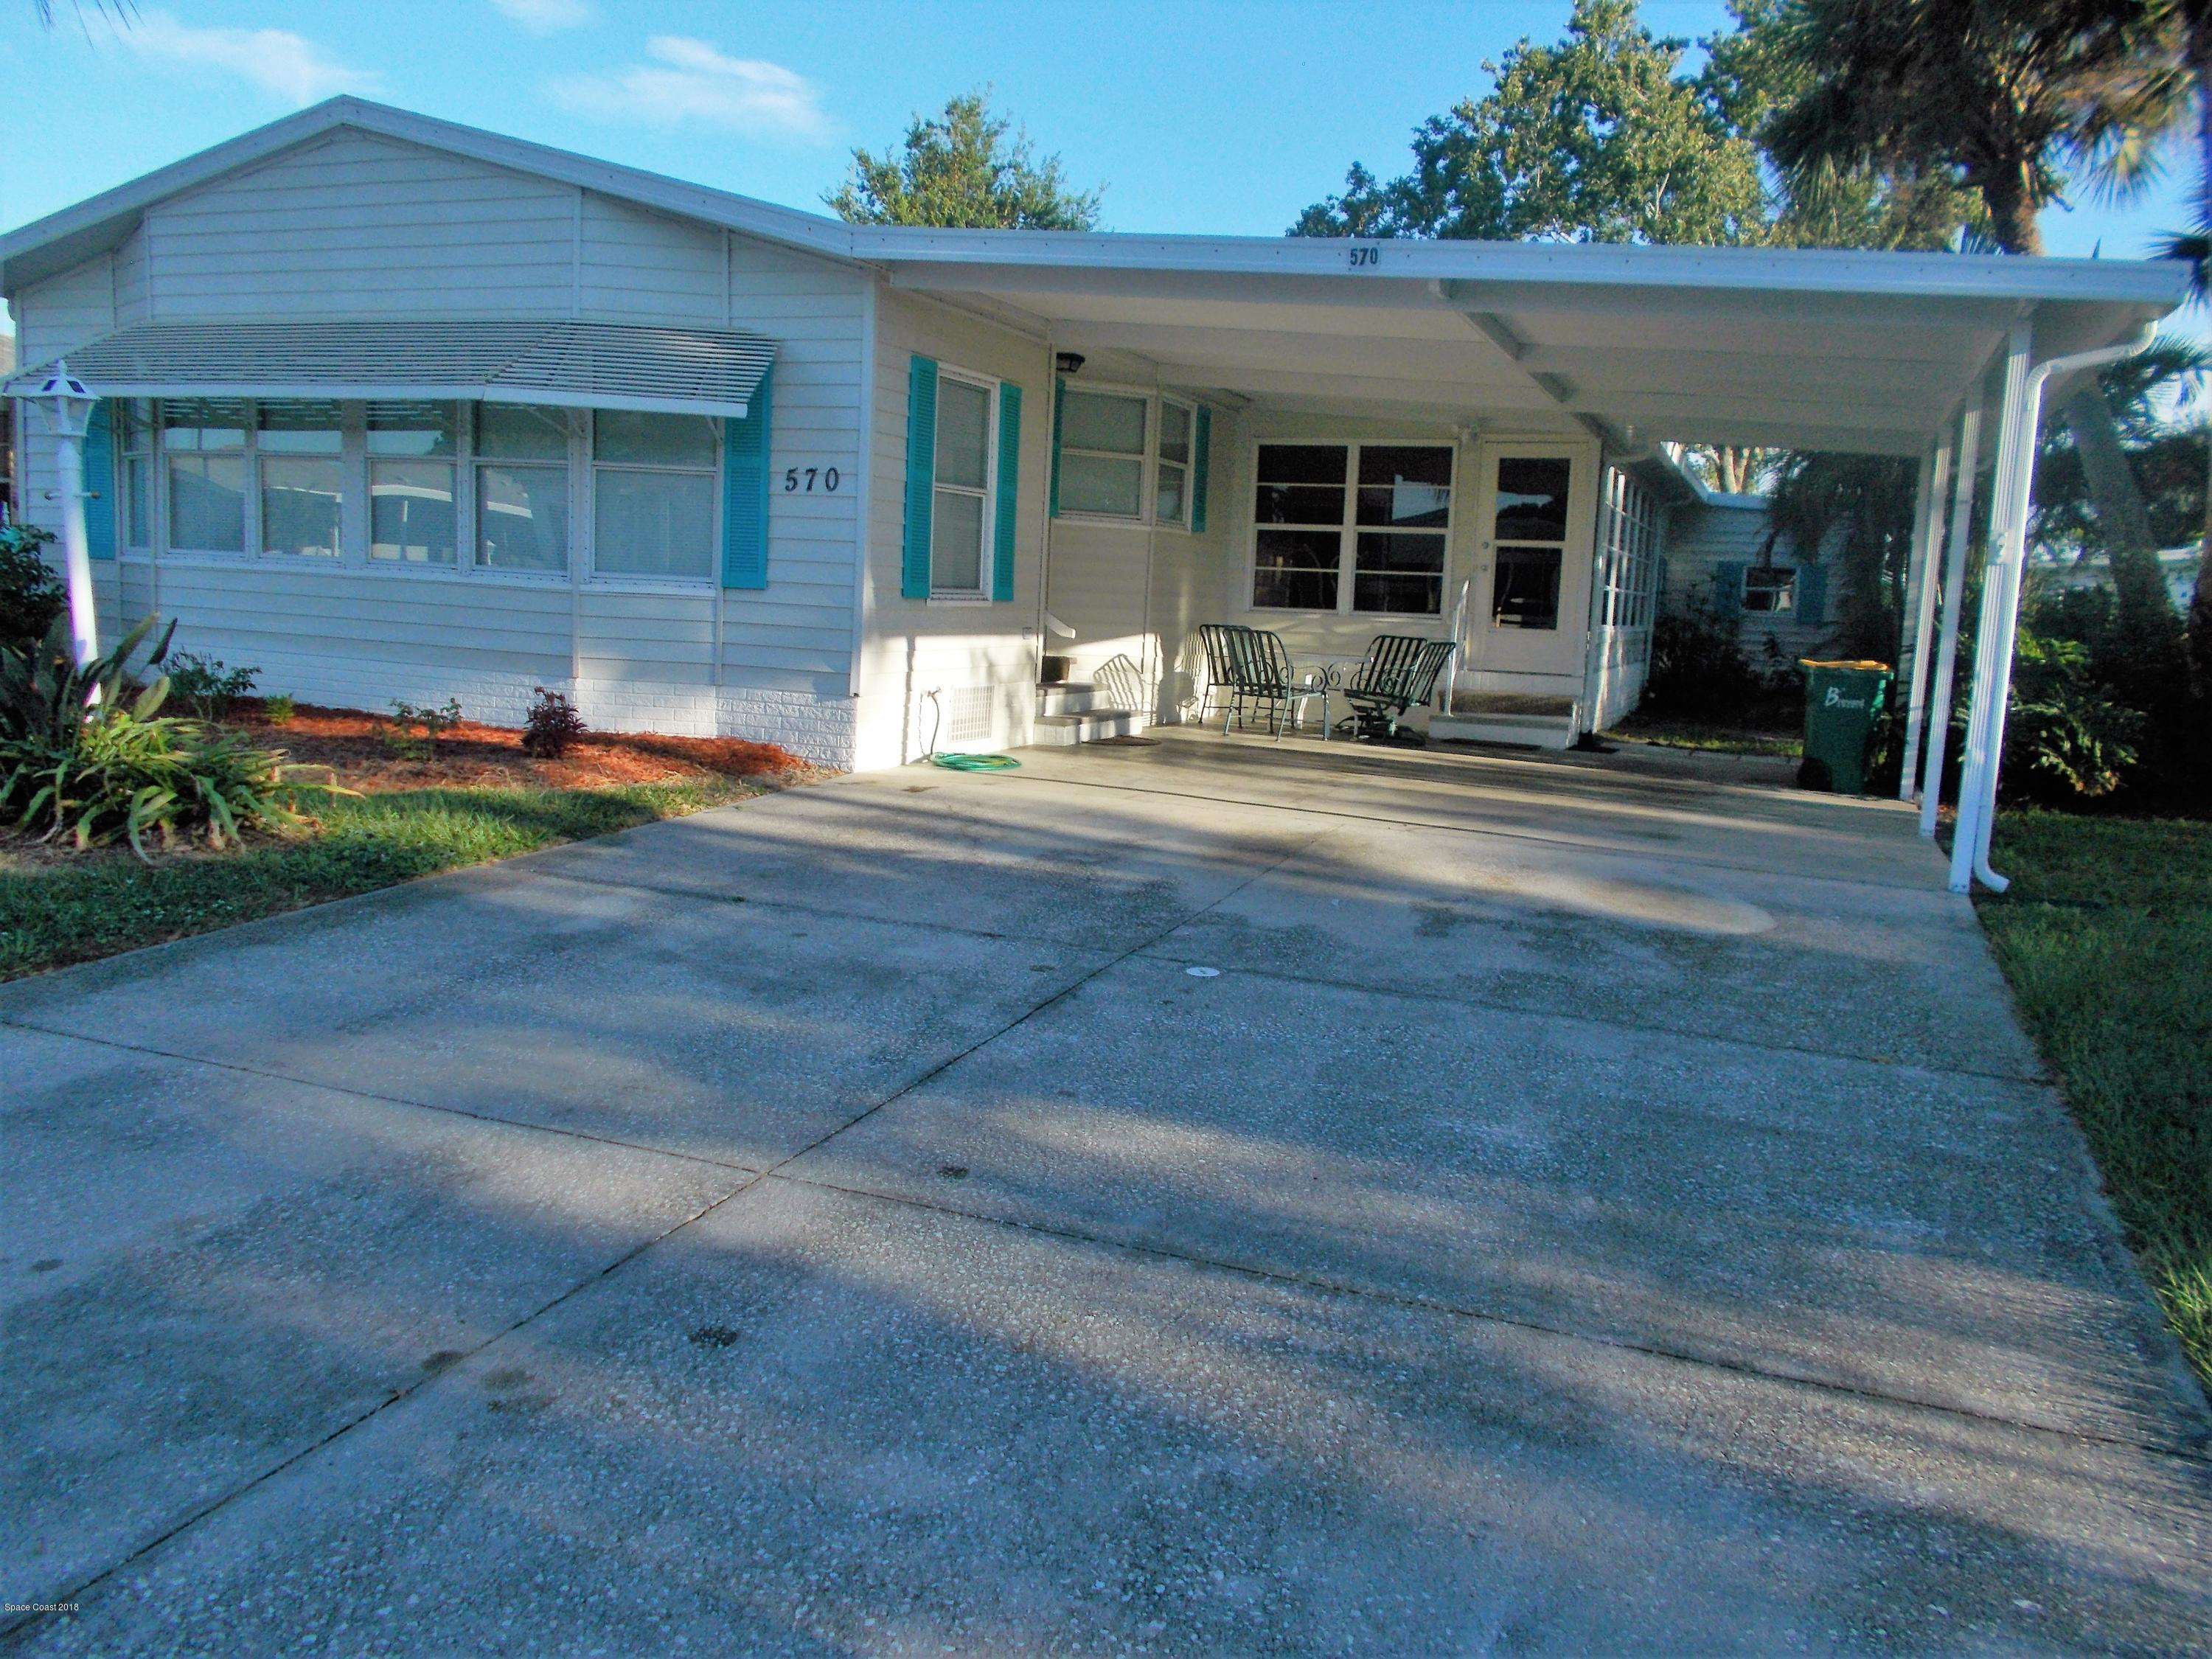 House for Sale at 570 Dolphin 570 Dolphin Barefoot Bay, Florida 32976 United States